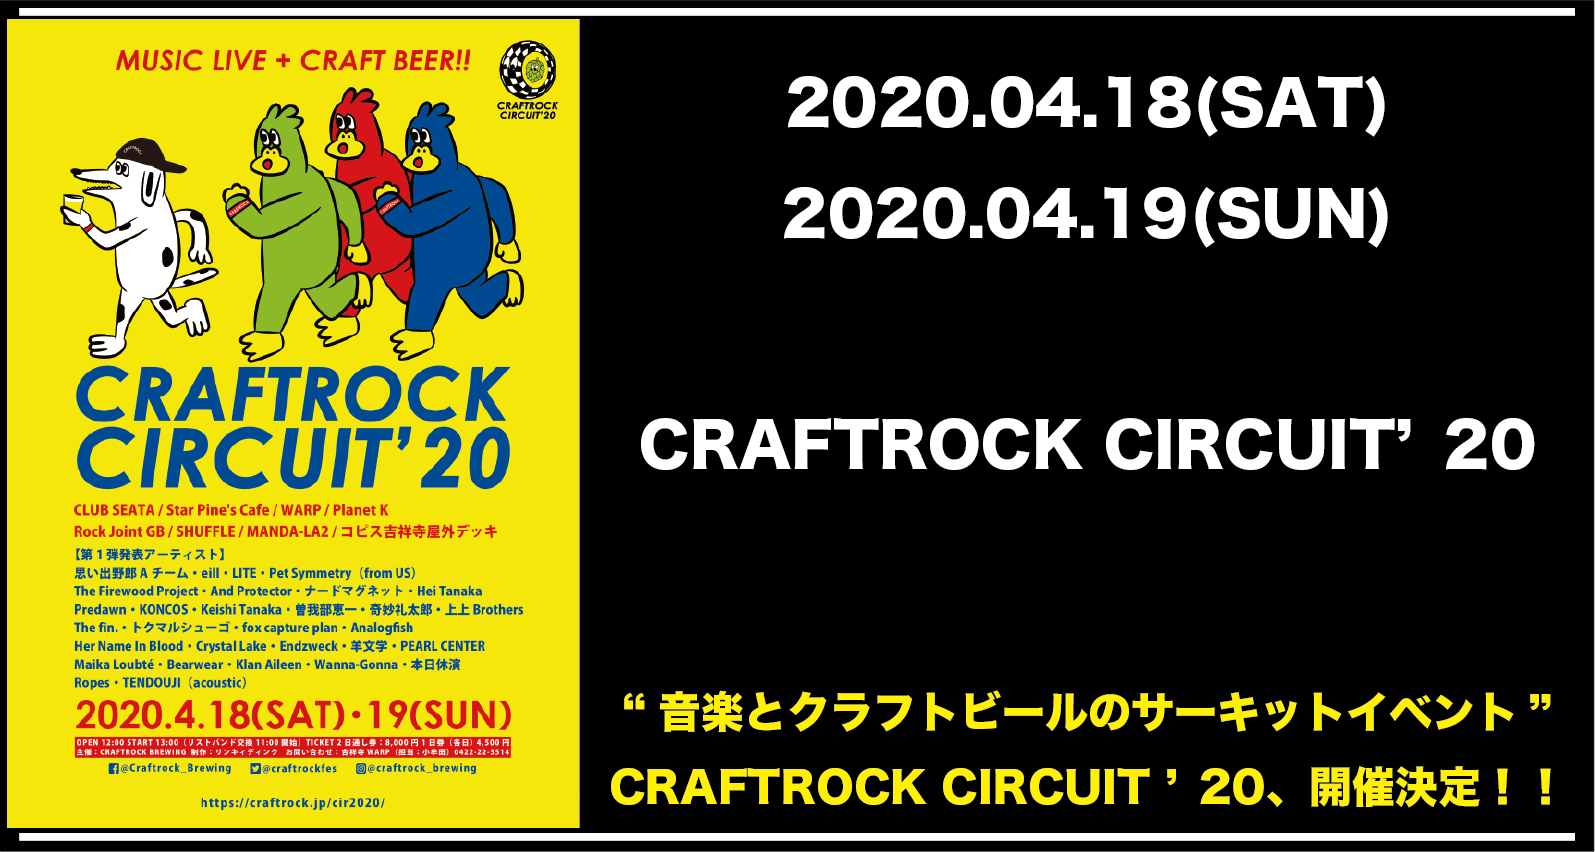 CRAFTROCK CIRCUIT '20